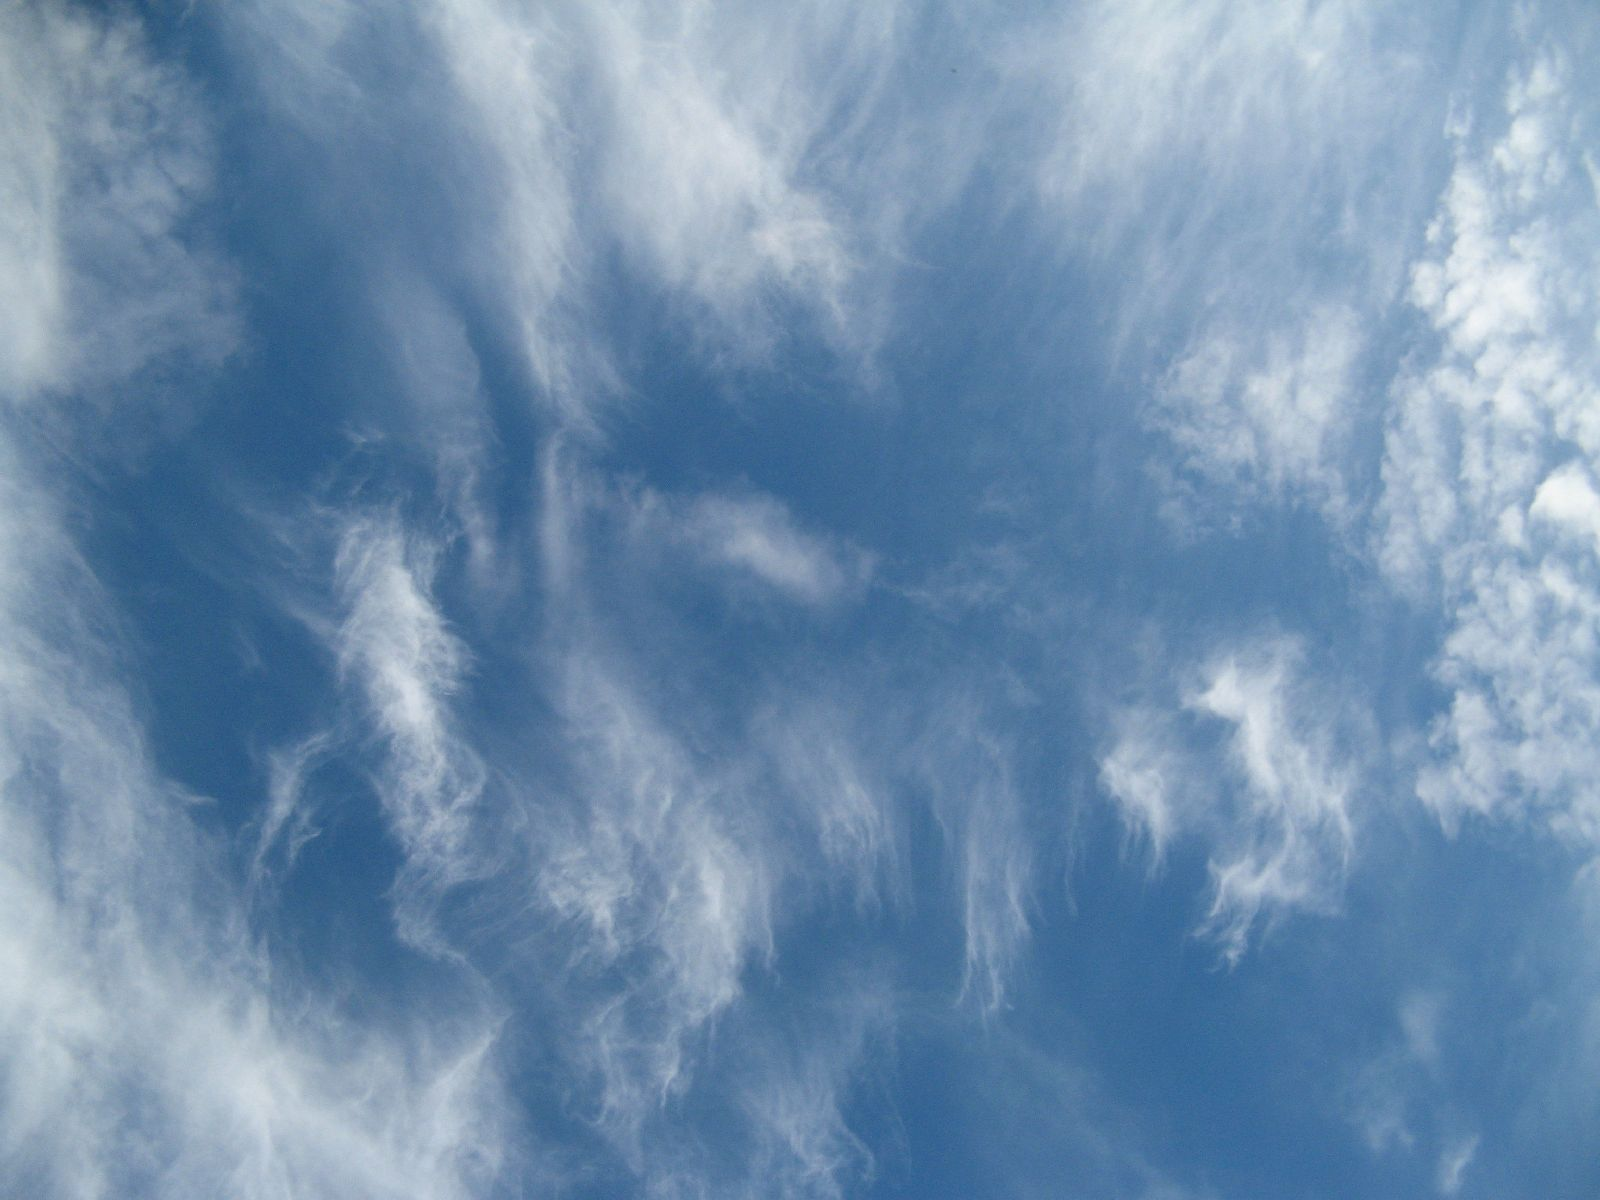 Sky_Clouds_Photo_Texture_B_1758